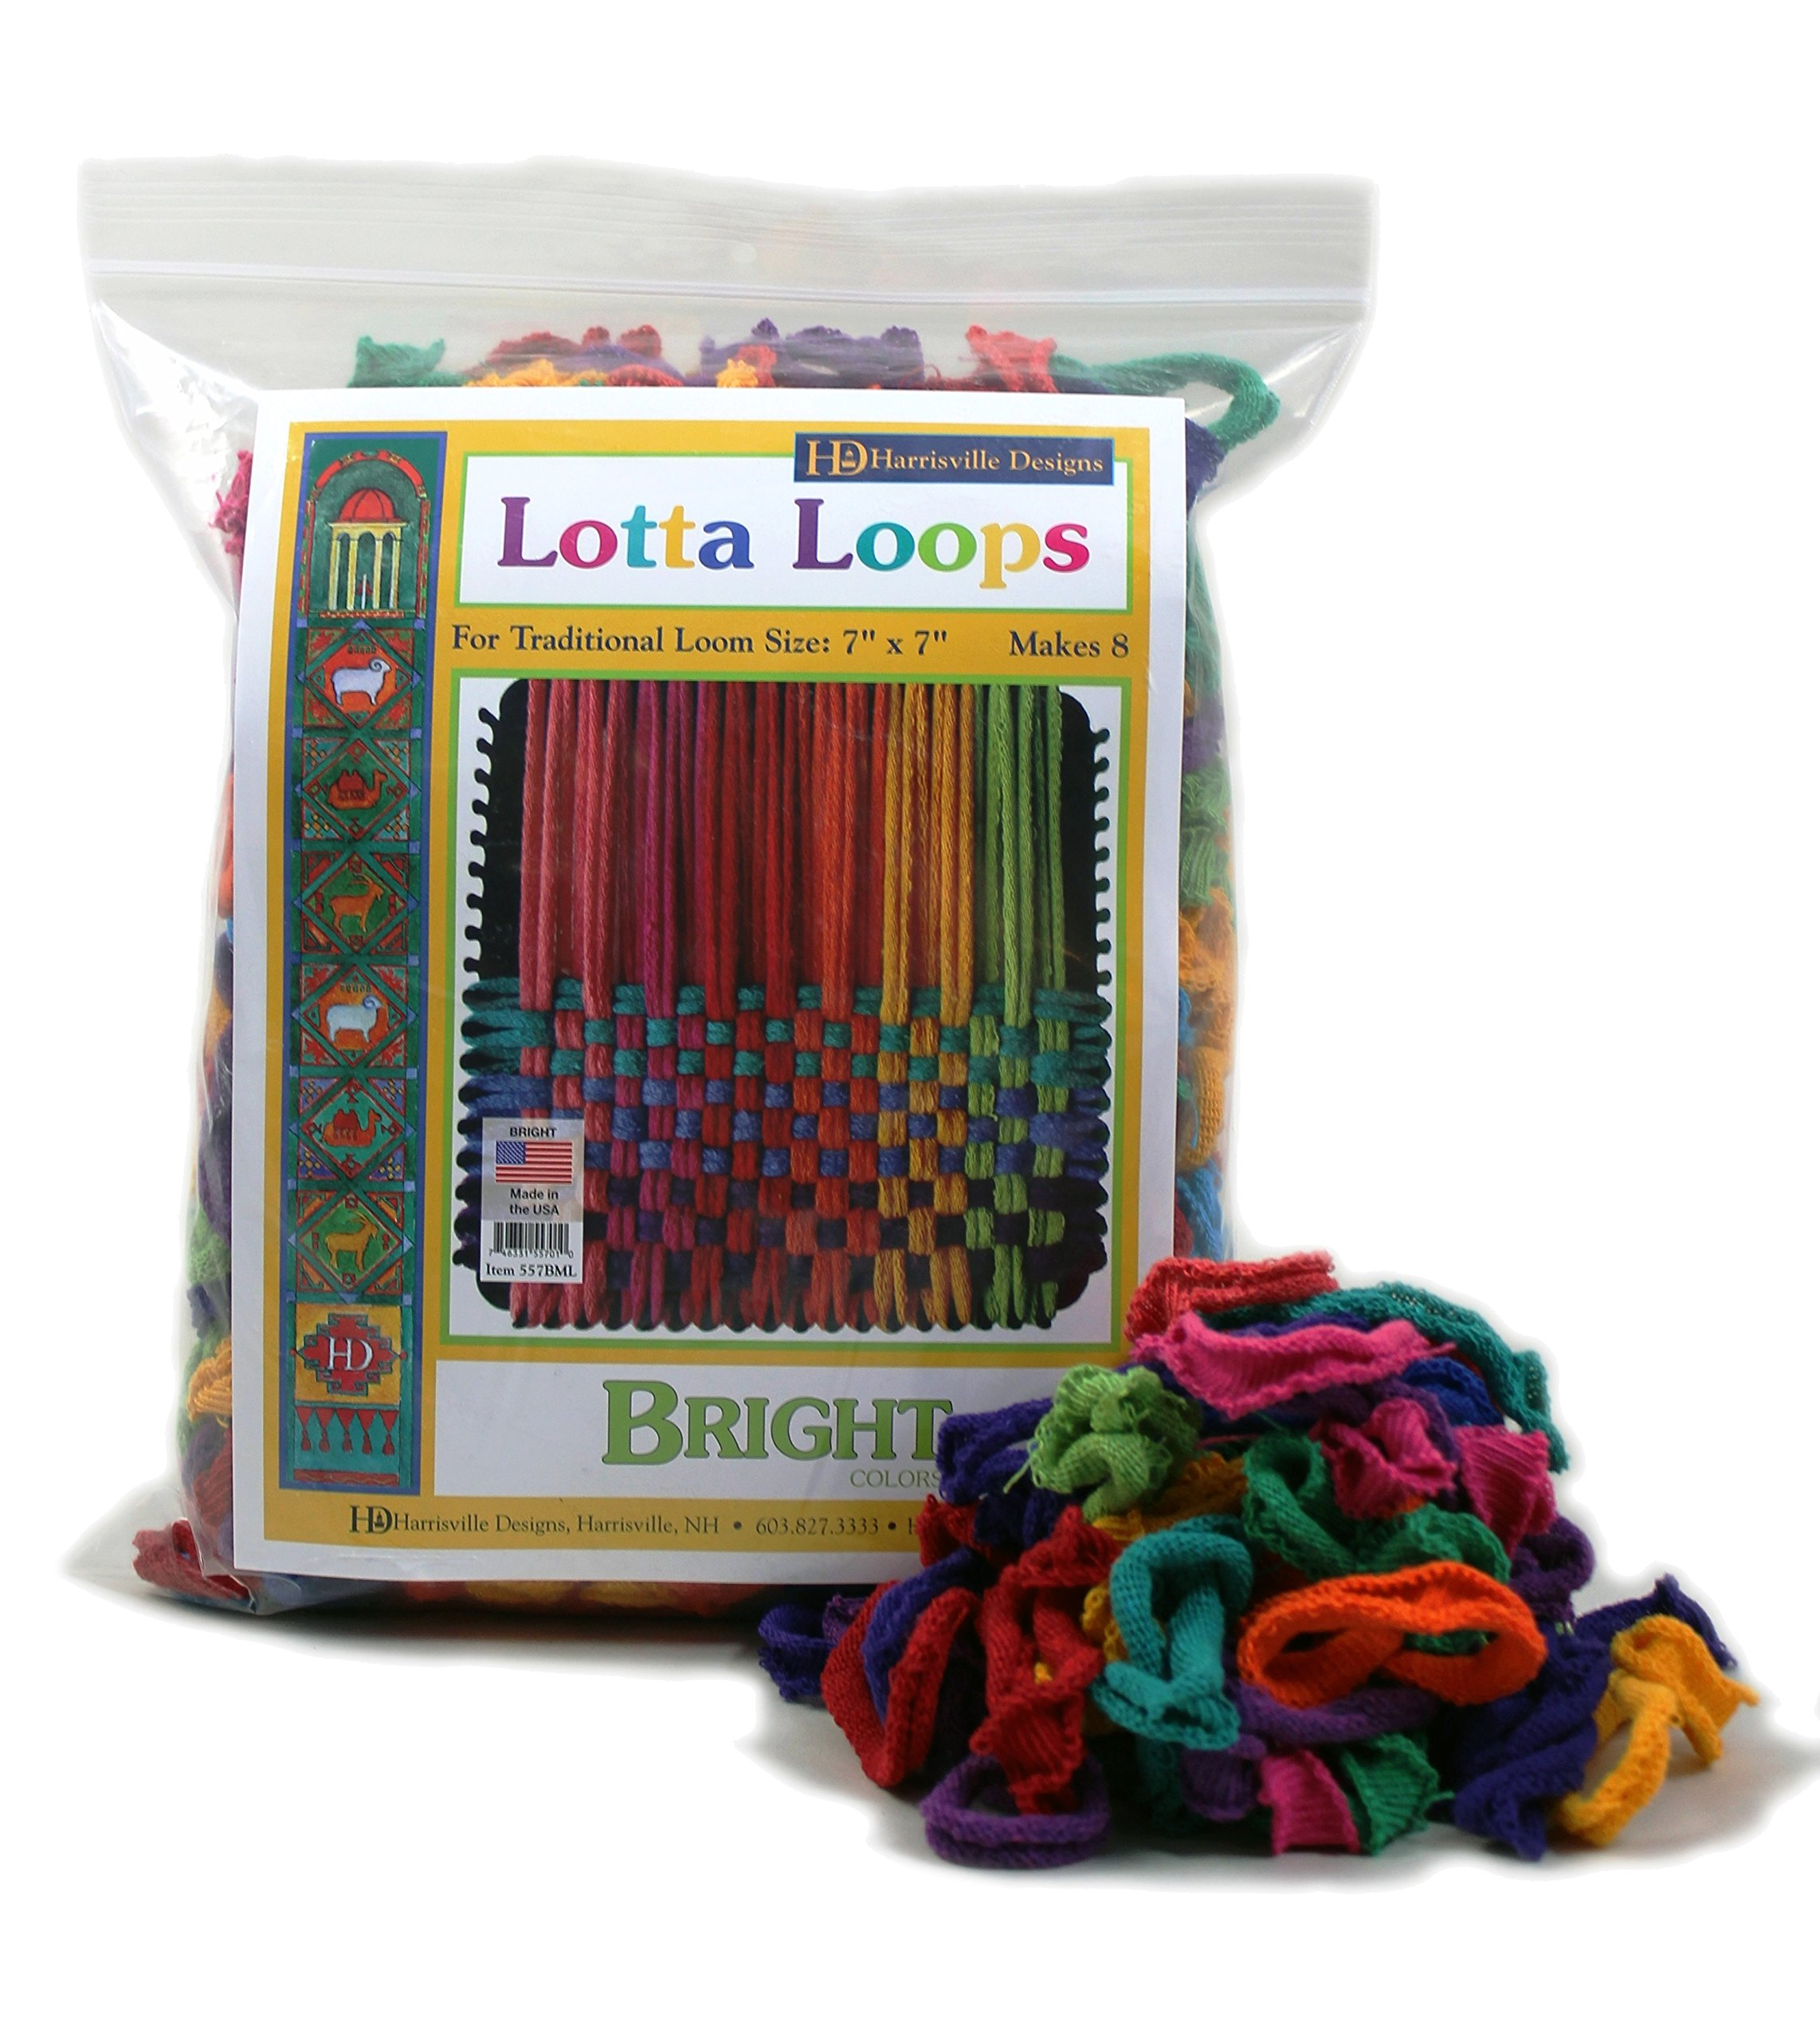 Harrisville Designs F557ML-AZ 7'' Bright Lotta Loops in Assorted Colors - Makes 8 Potholders by Harrisville Designs